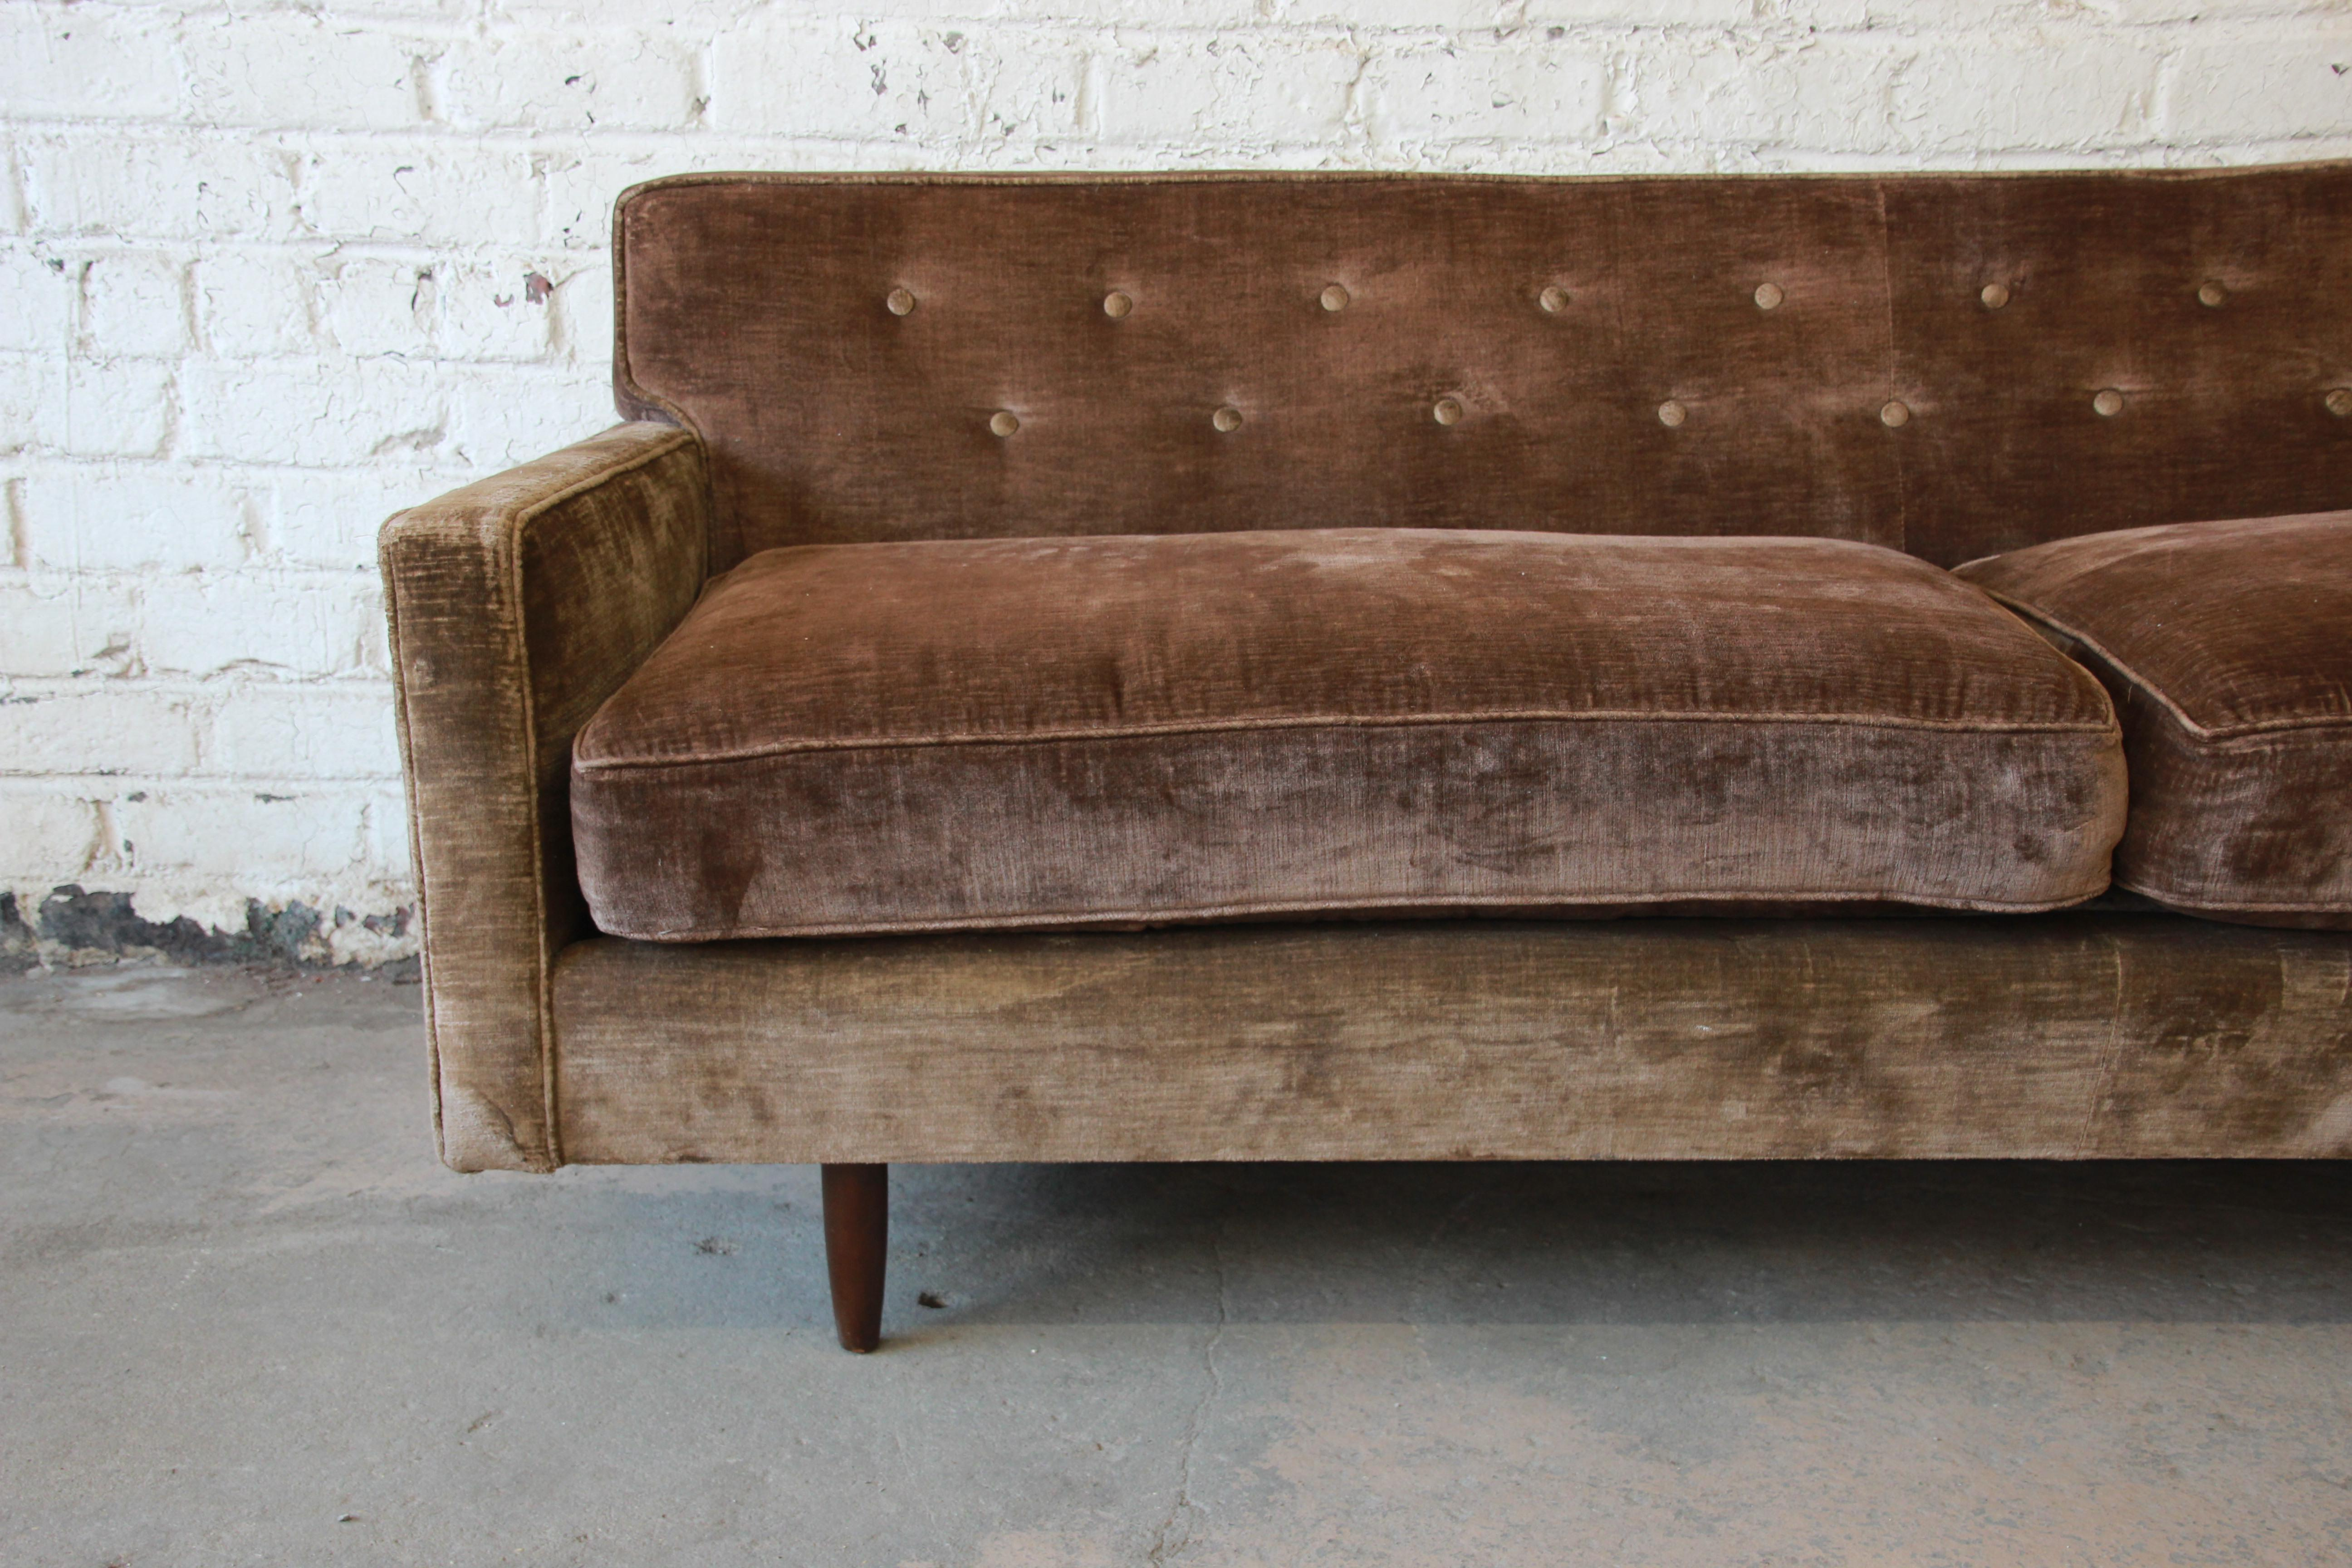 Exceptionnel Baker Furniture Company Baker Furniture Mid Century Tufted Brown Velvet Sofa  For Sale   Image